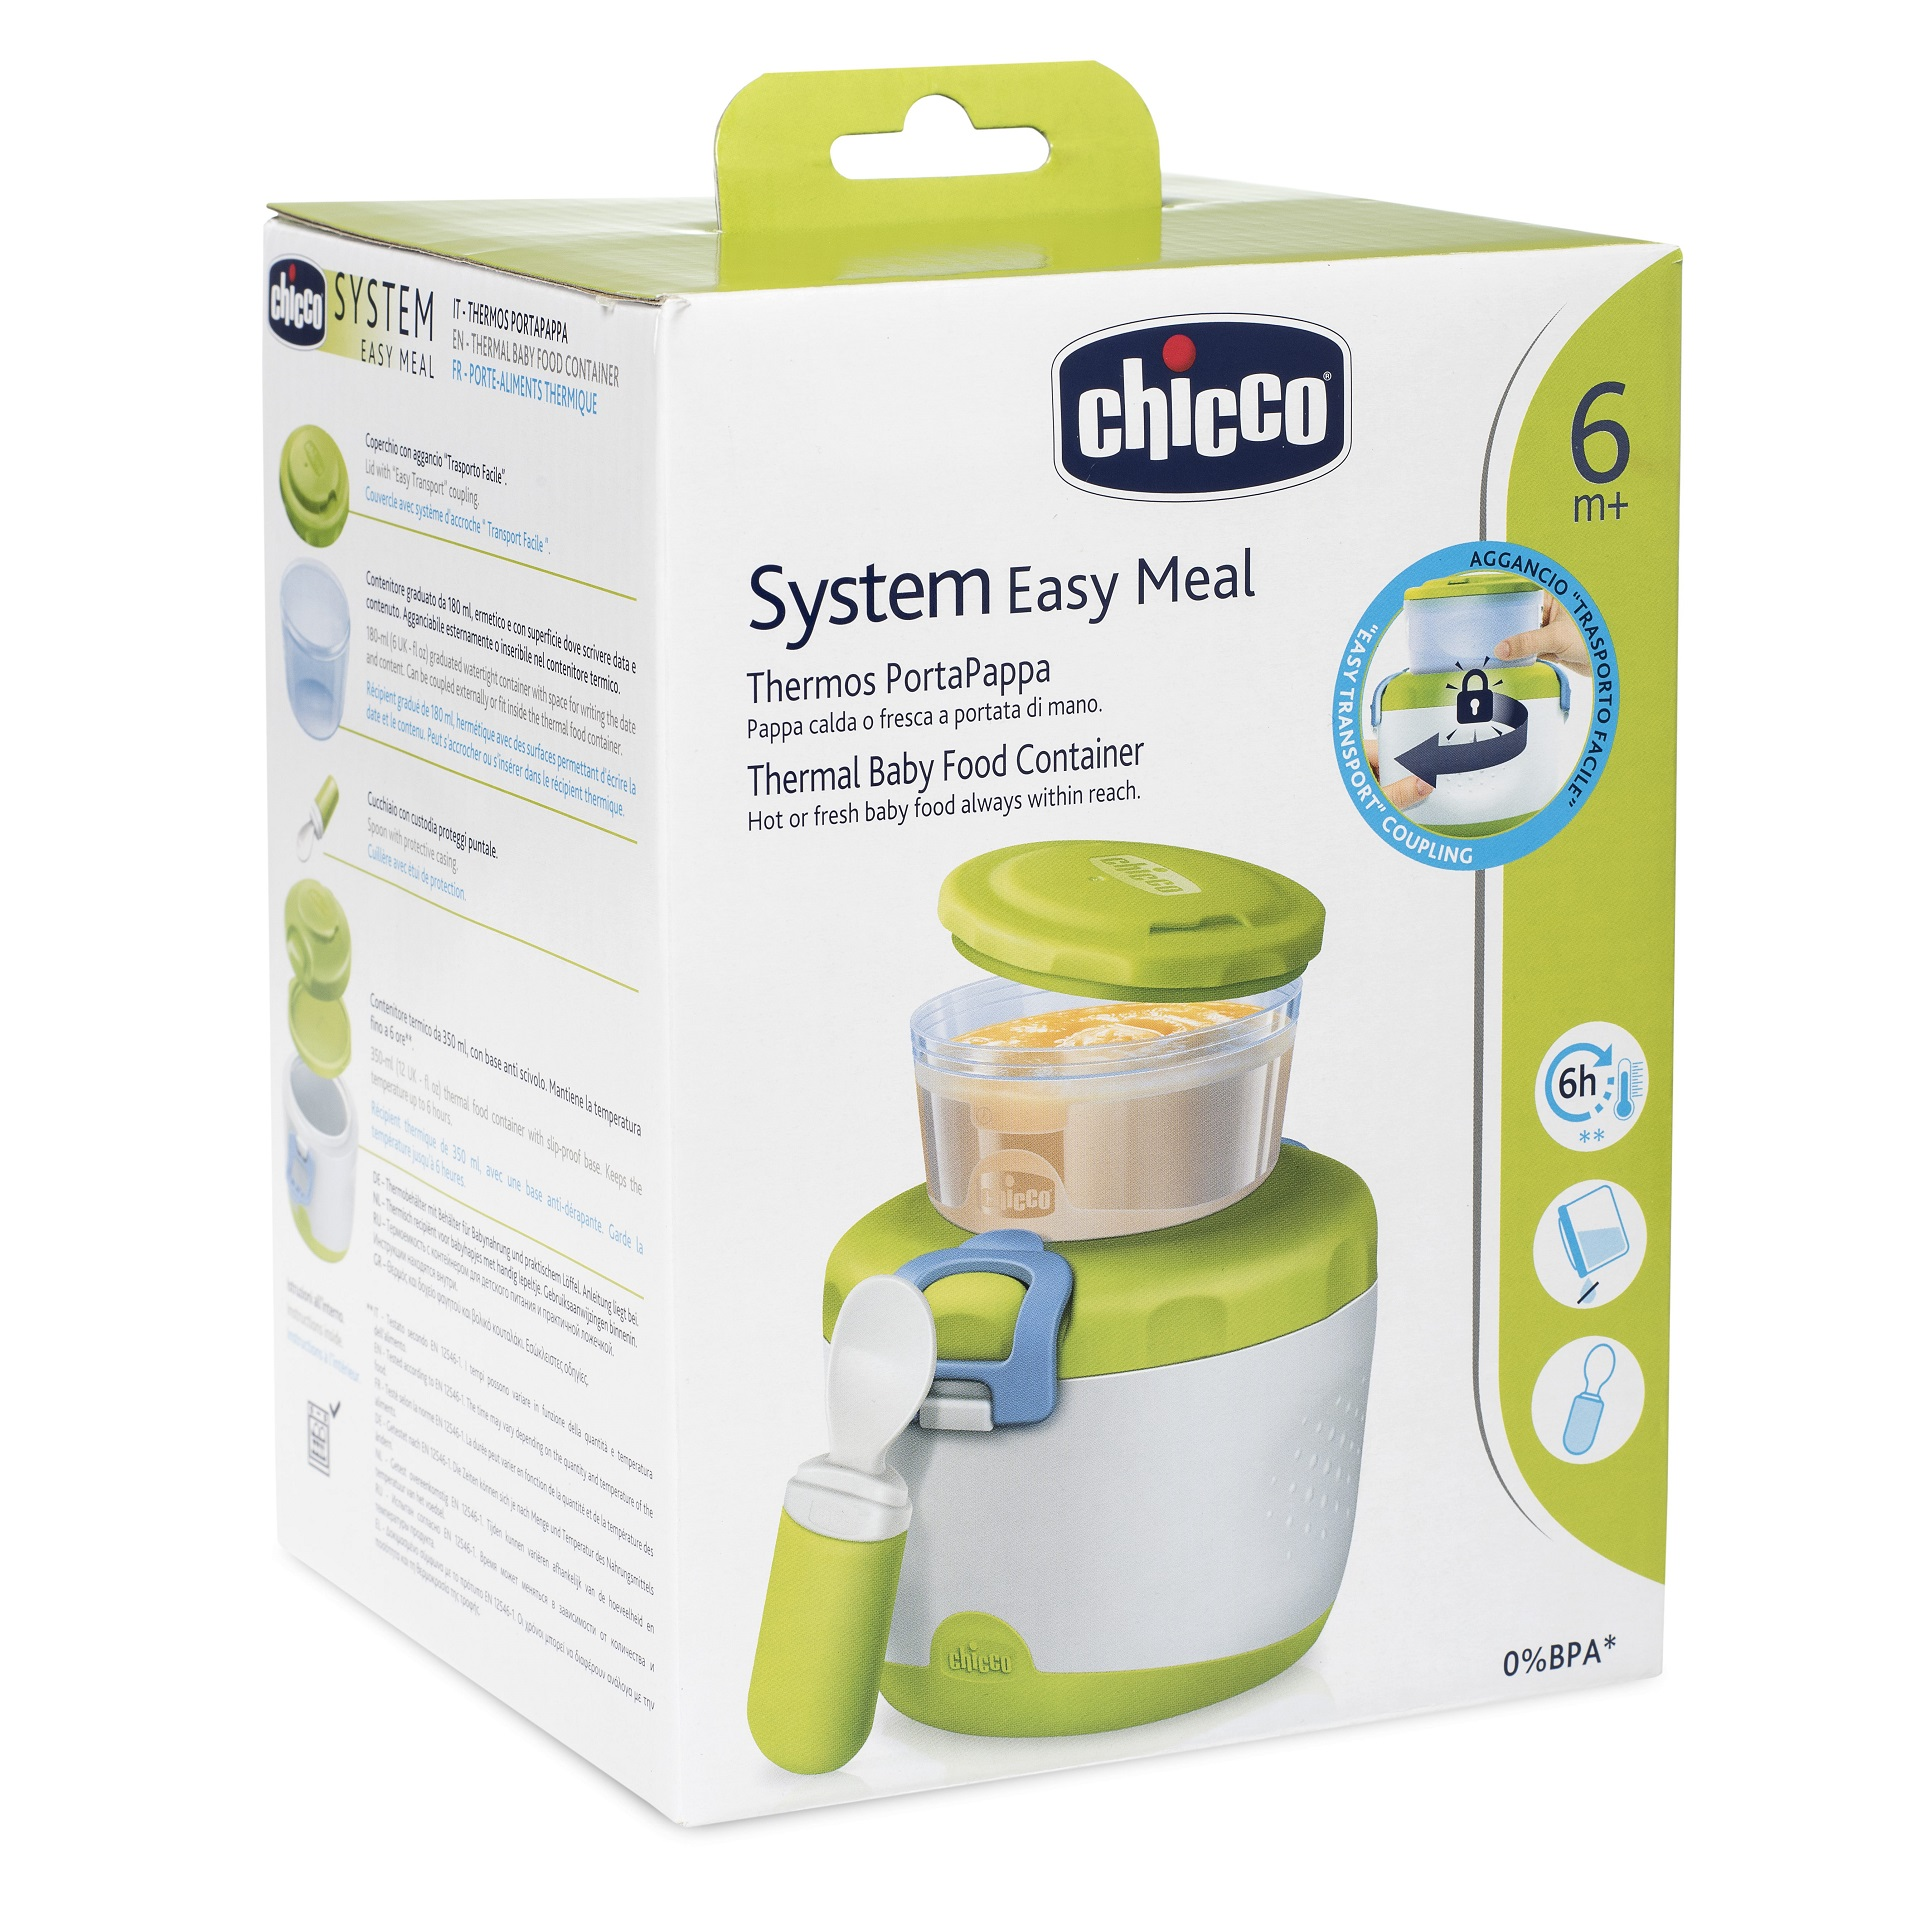 Chicco Easy Meal Insulating Container For Baby Food System 6m Buy Safe Steam Cooker